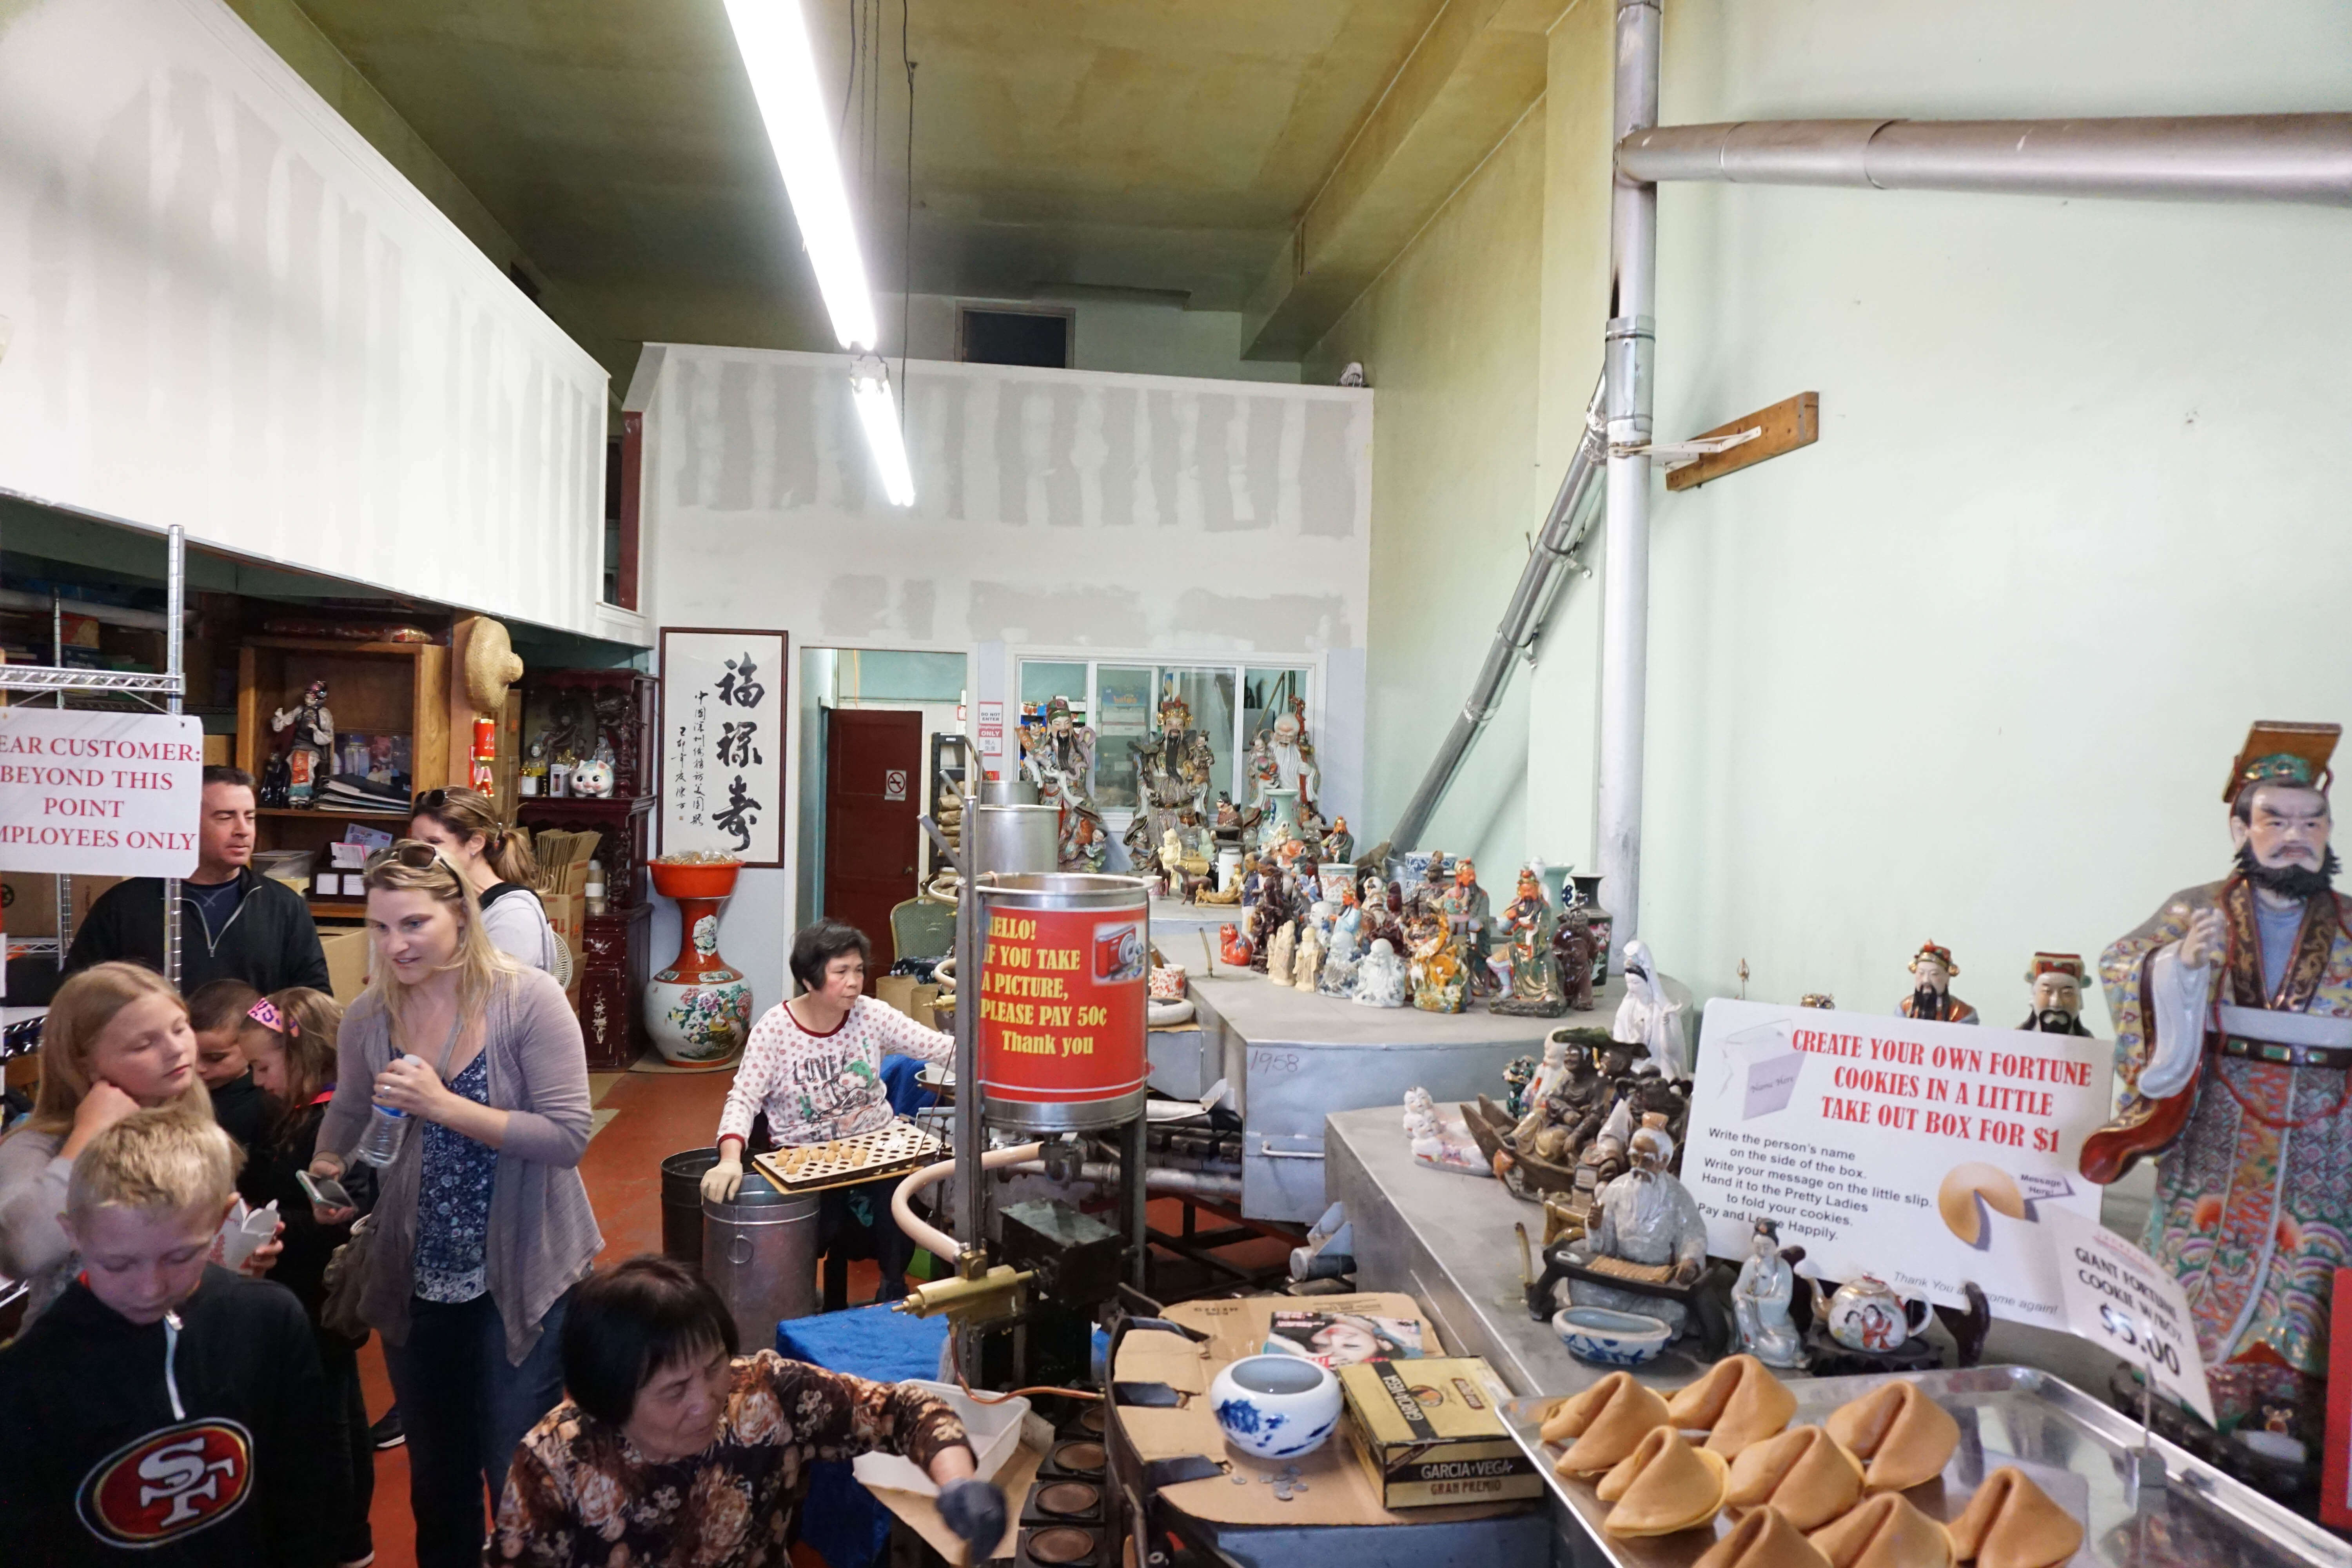 San Francisco fortune cookie factory. So cool!